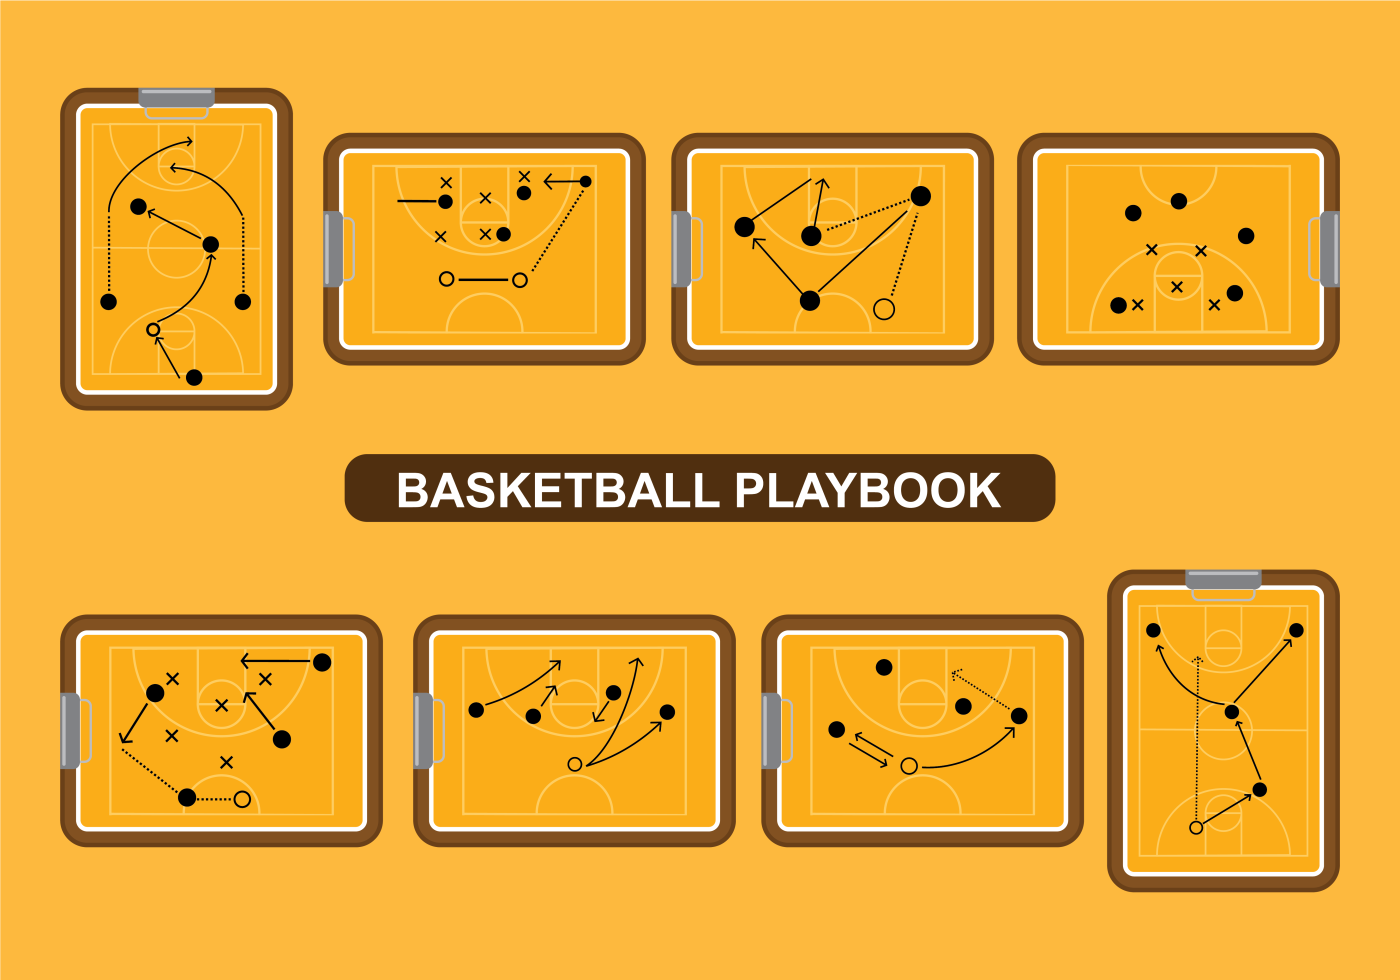 basketball playbook vector download free vector art stock graphics images. Black Bedroom Furniture Sets. Home Design Ideas